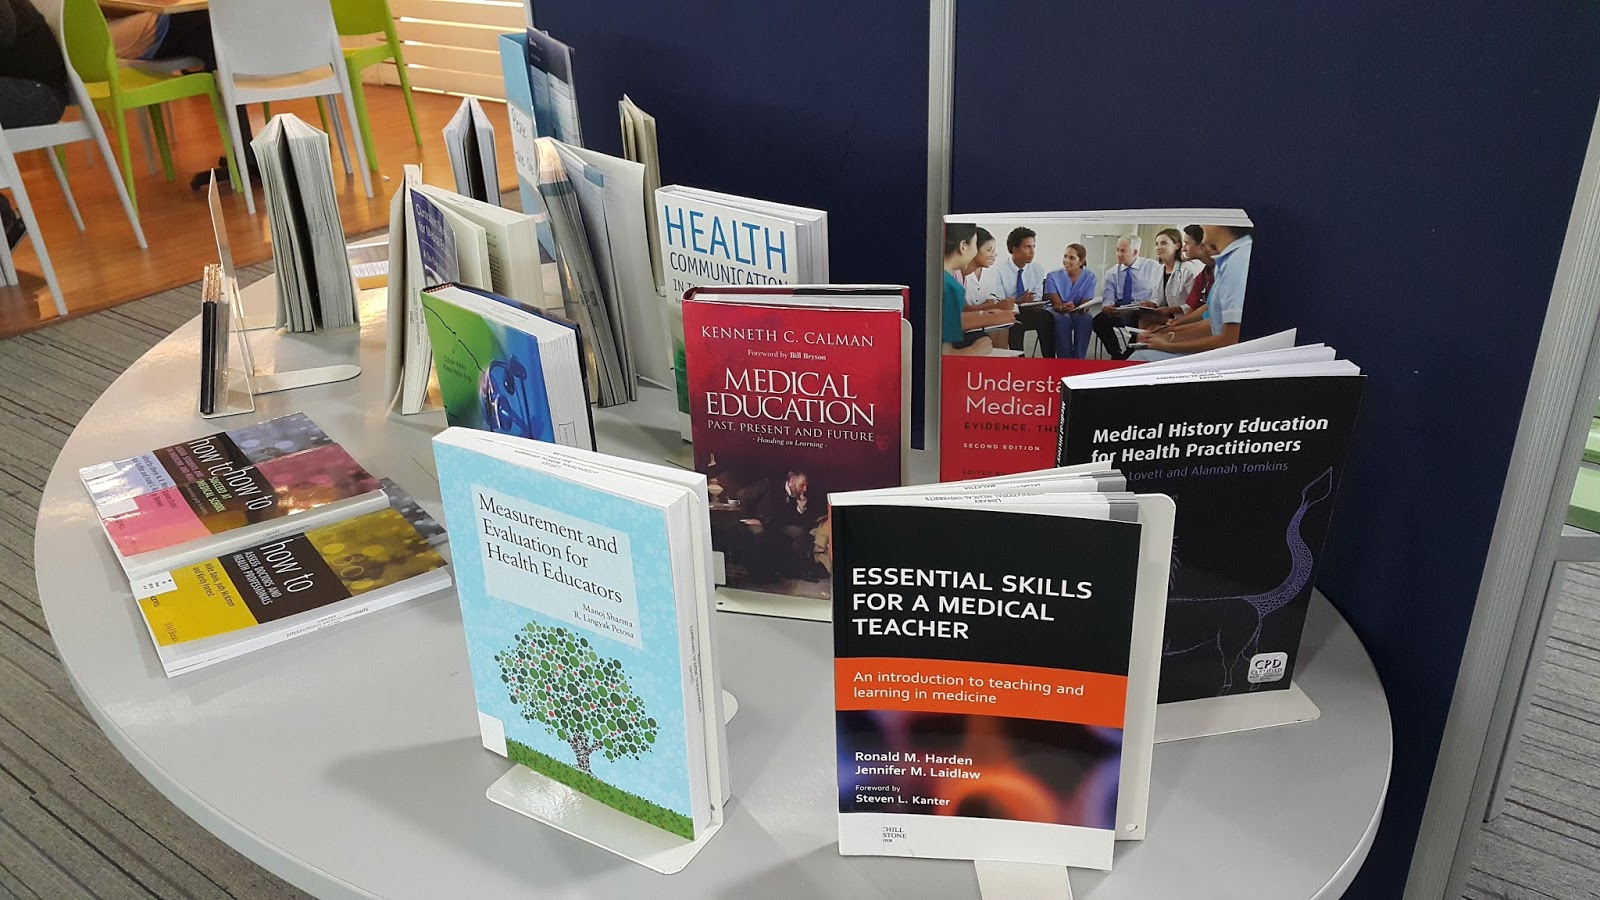 IMU Library Blog: Medical Education Books Exhibition